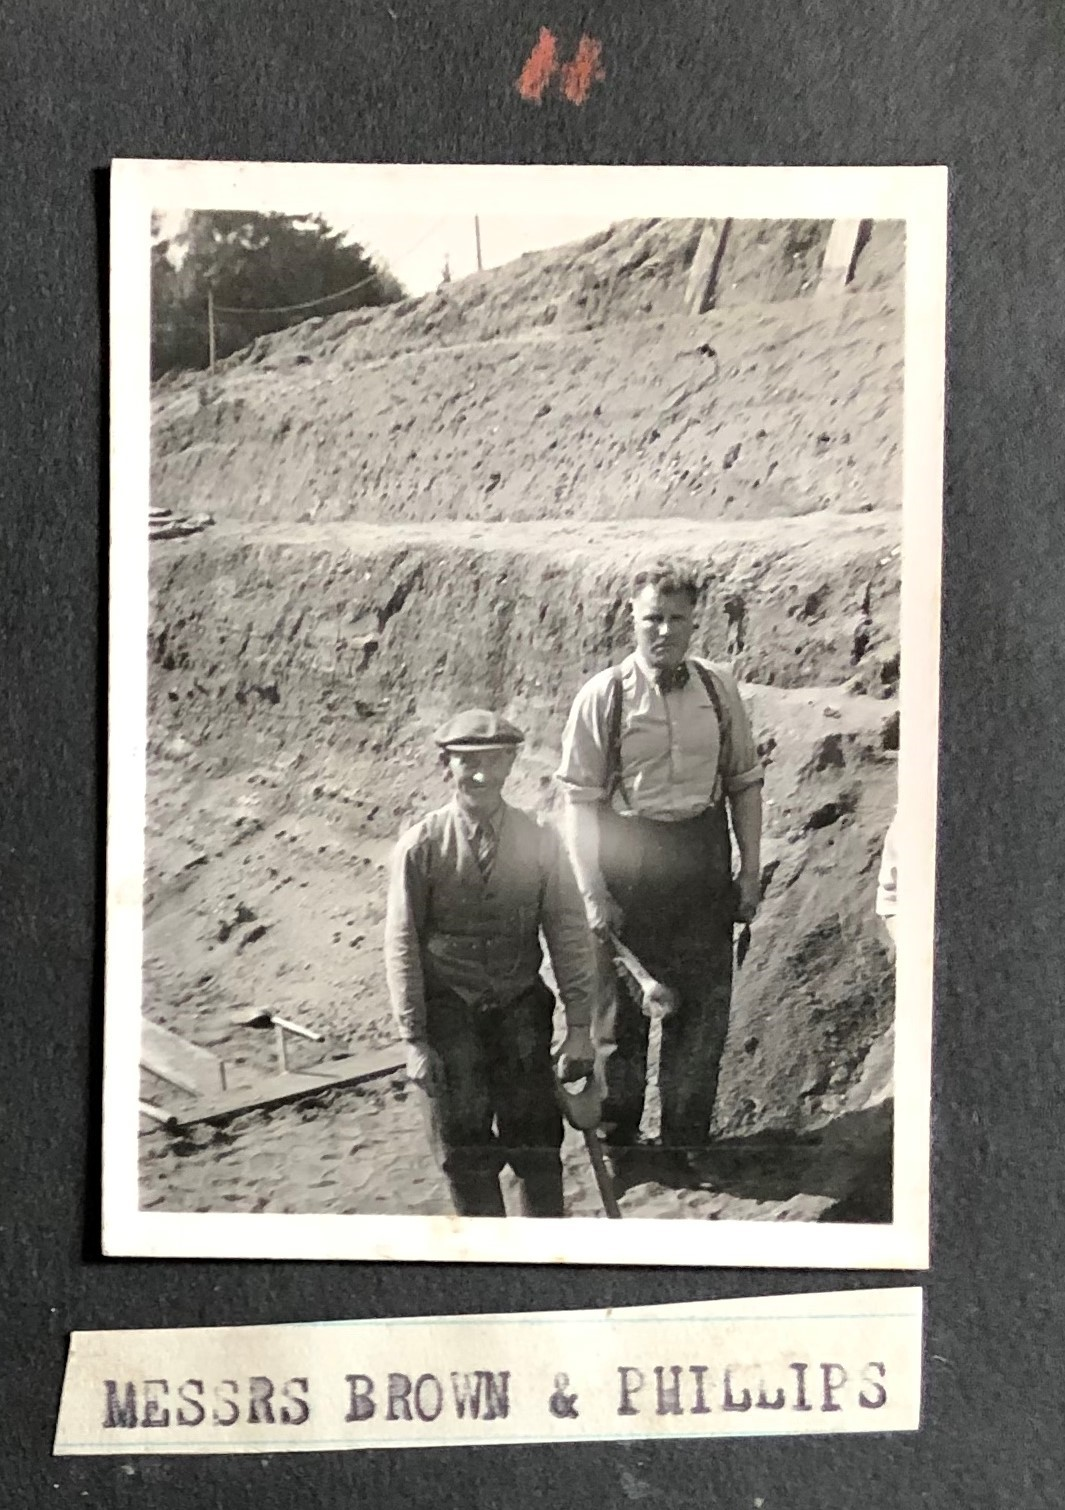 Black and white photo showing two men - Basil brown on the left and Charles W. Philips on the right. They are stood in a large trench. Basil Brown wears a shirt, trousers, waistcoat and flat cap. H ehas his hand on a handle of what looks like a shovel. Charles W. Philips stands slightly above Basil Brown and wears a shirt, trousers and braces and holds a trowel.